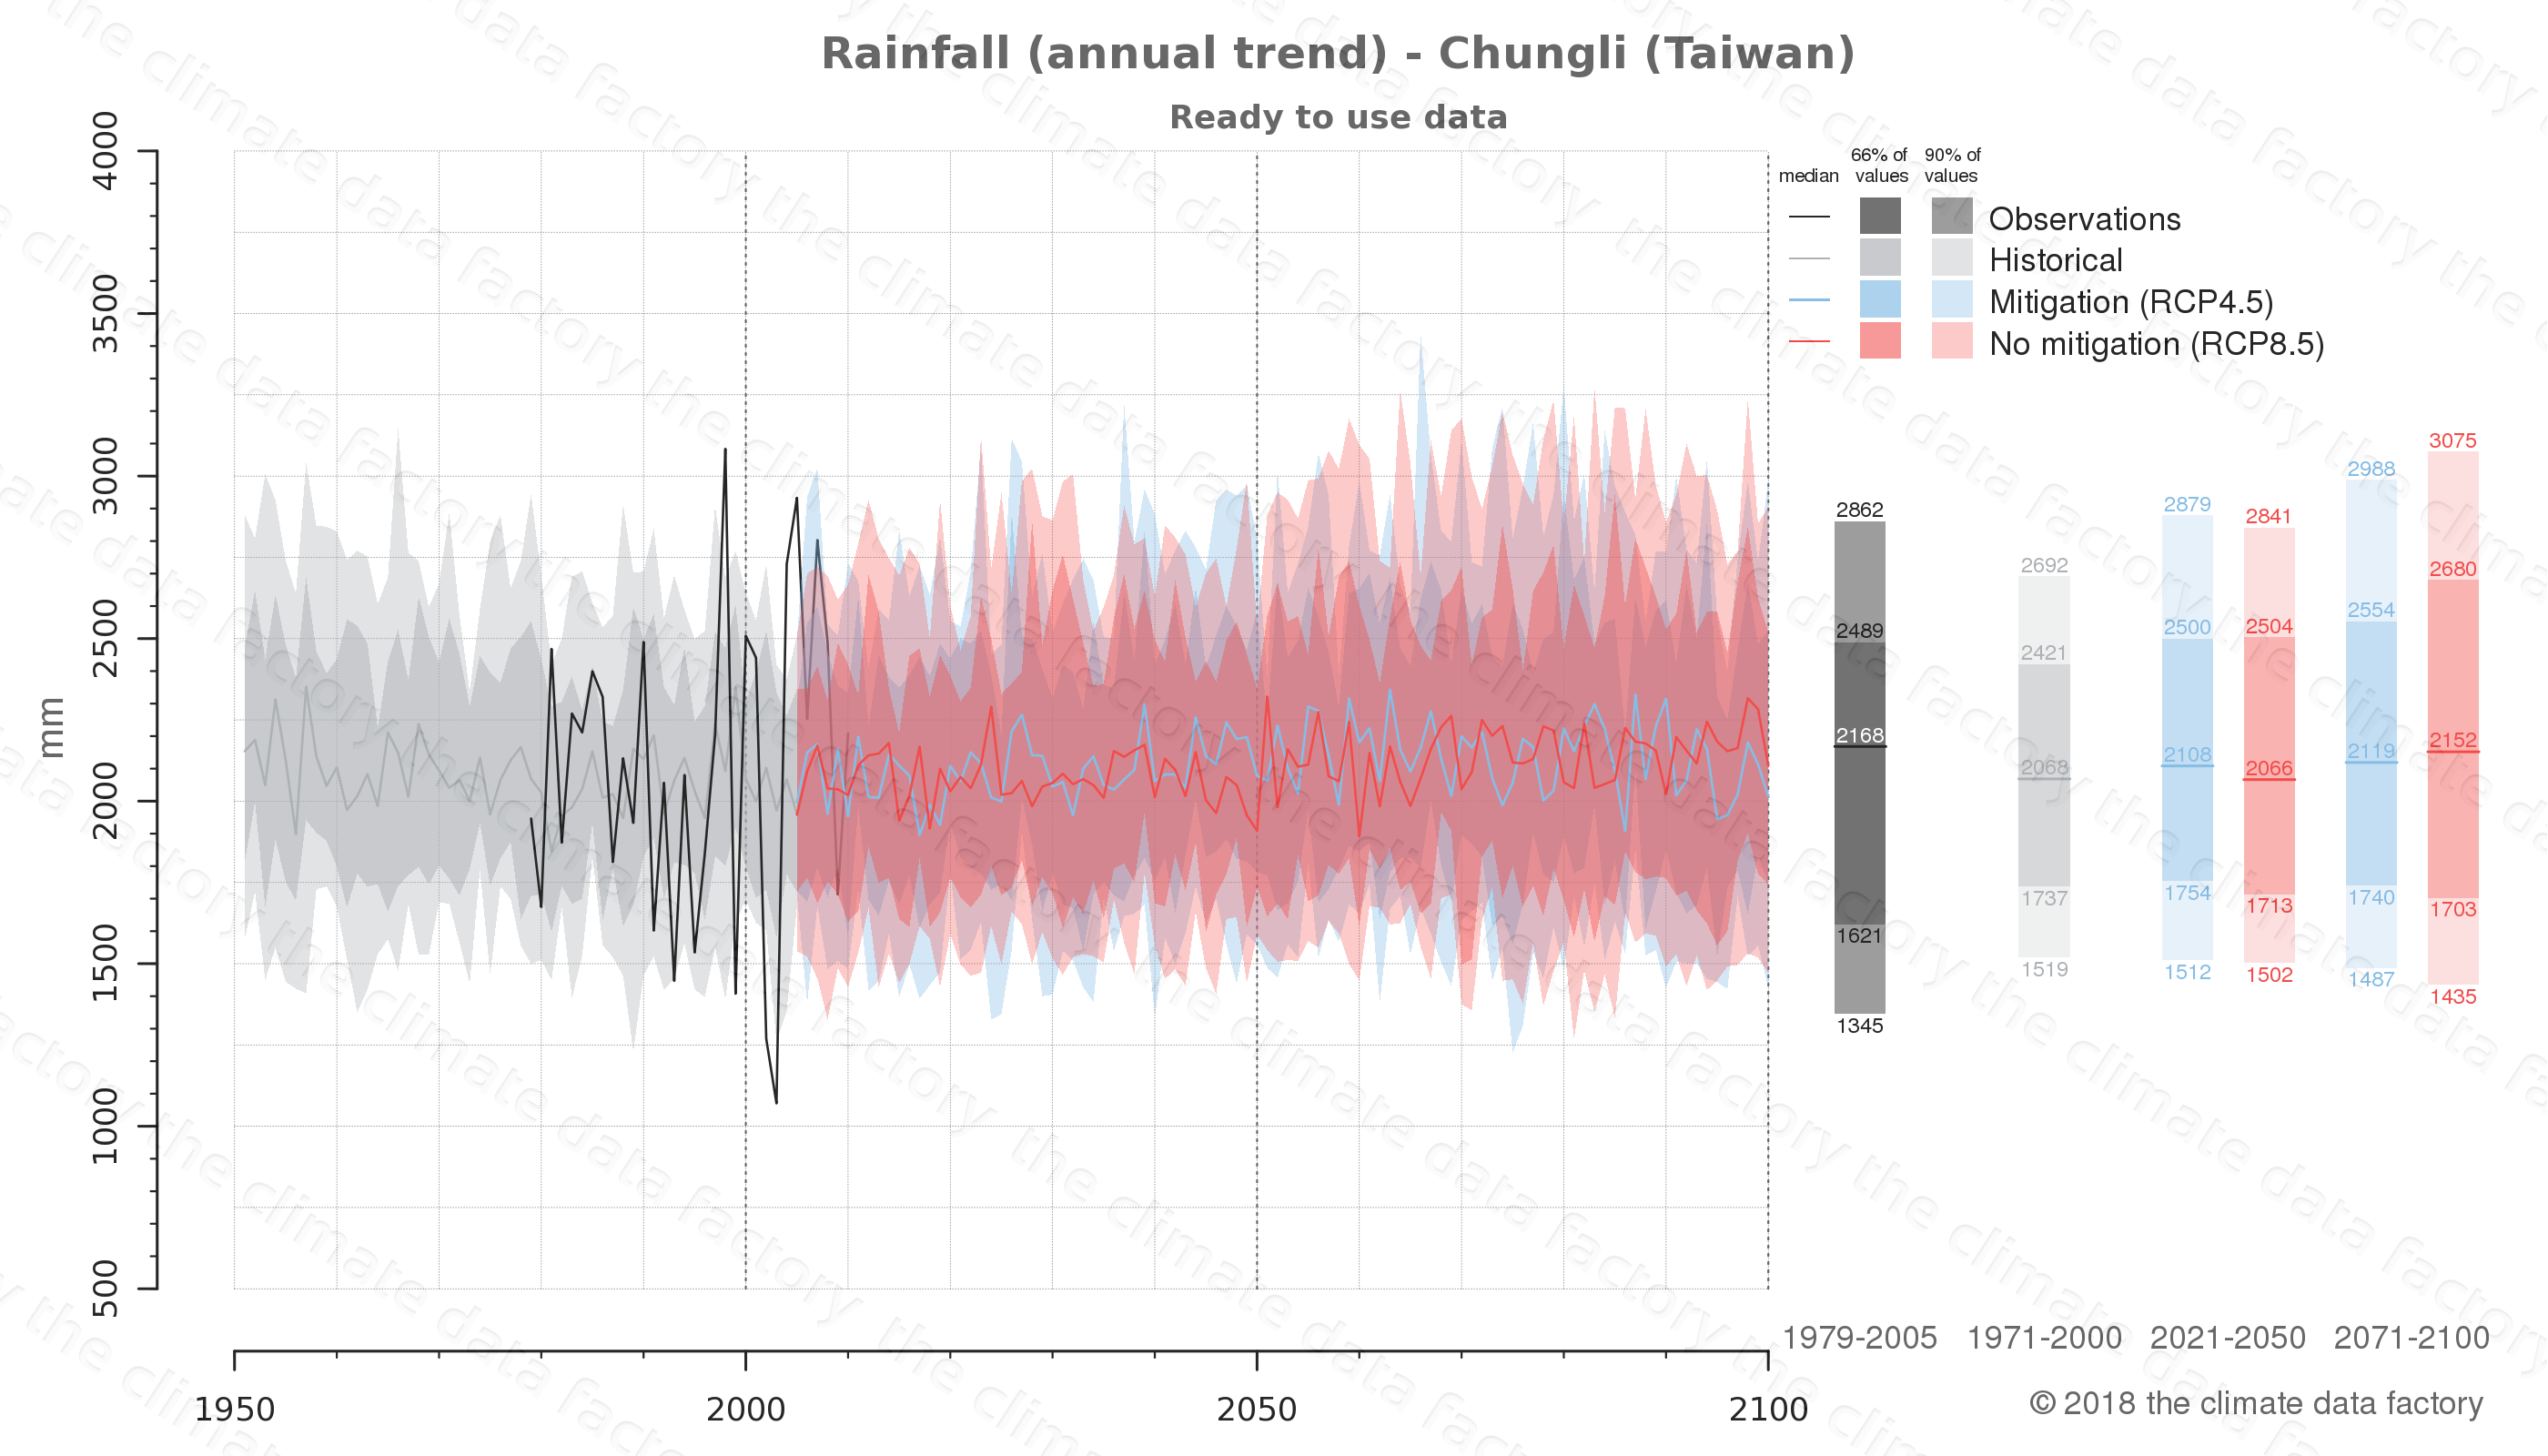 climate change data policy adaptation climate graph city data rainfall chungli taiwan